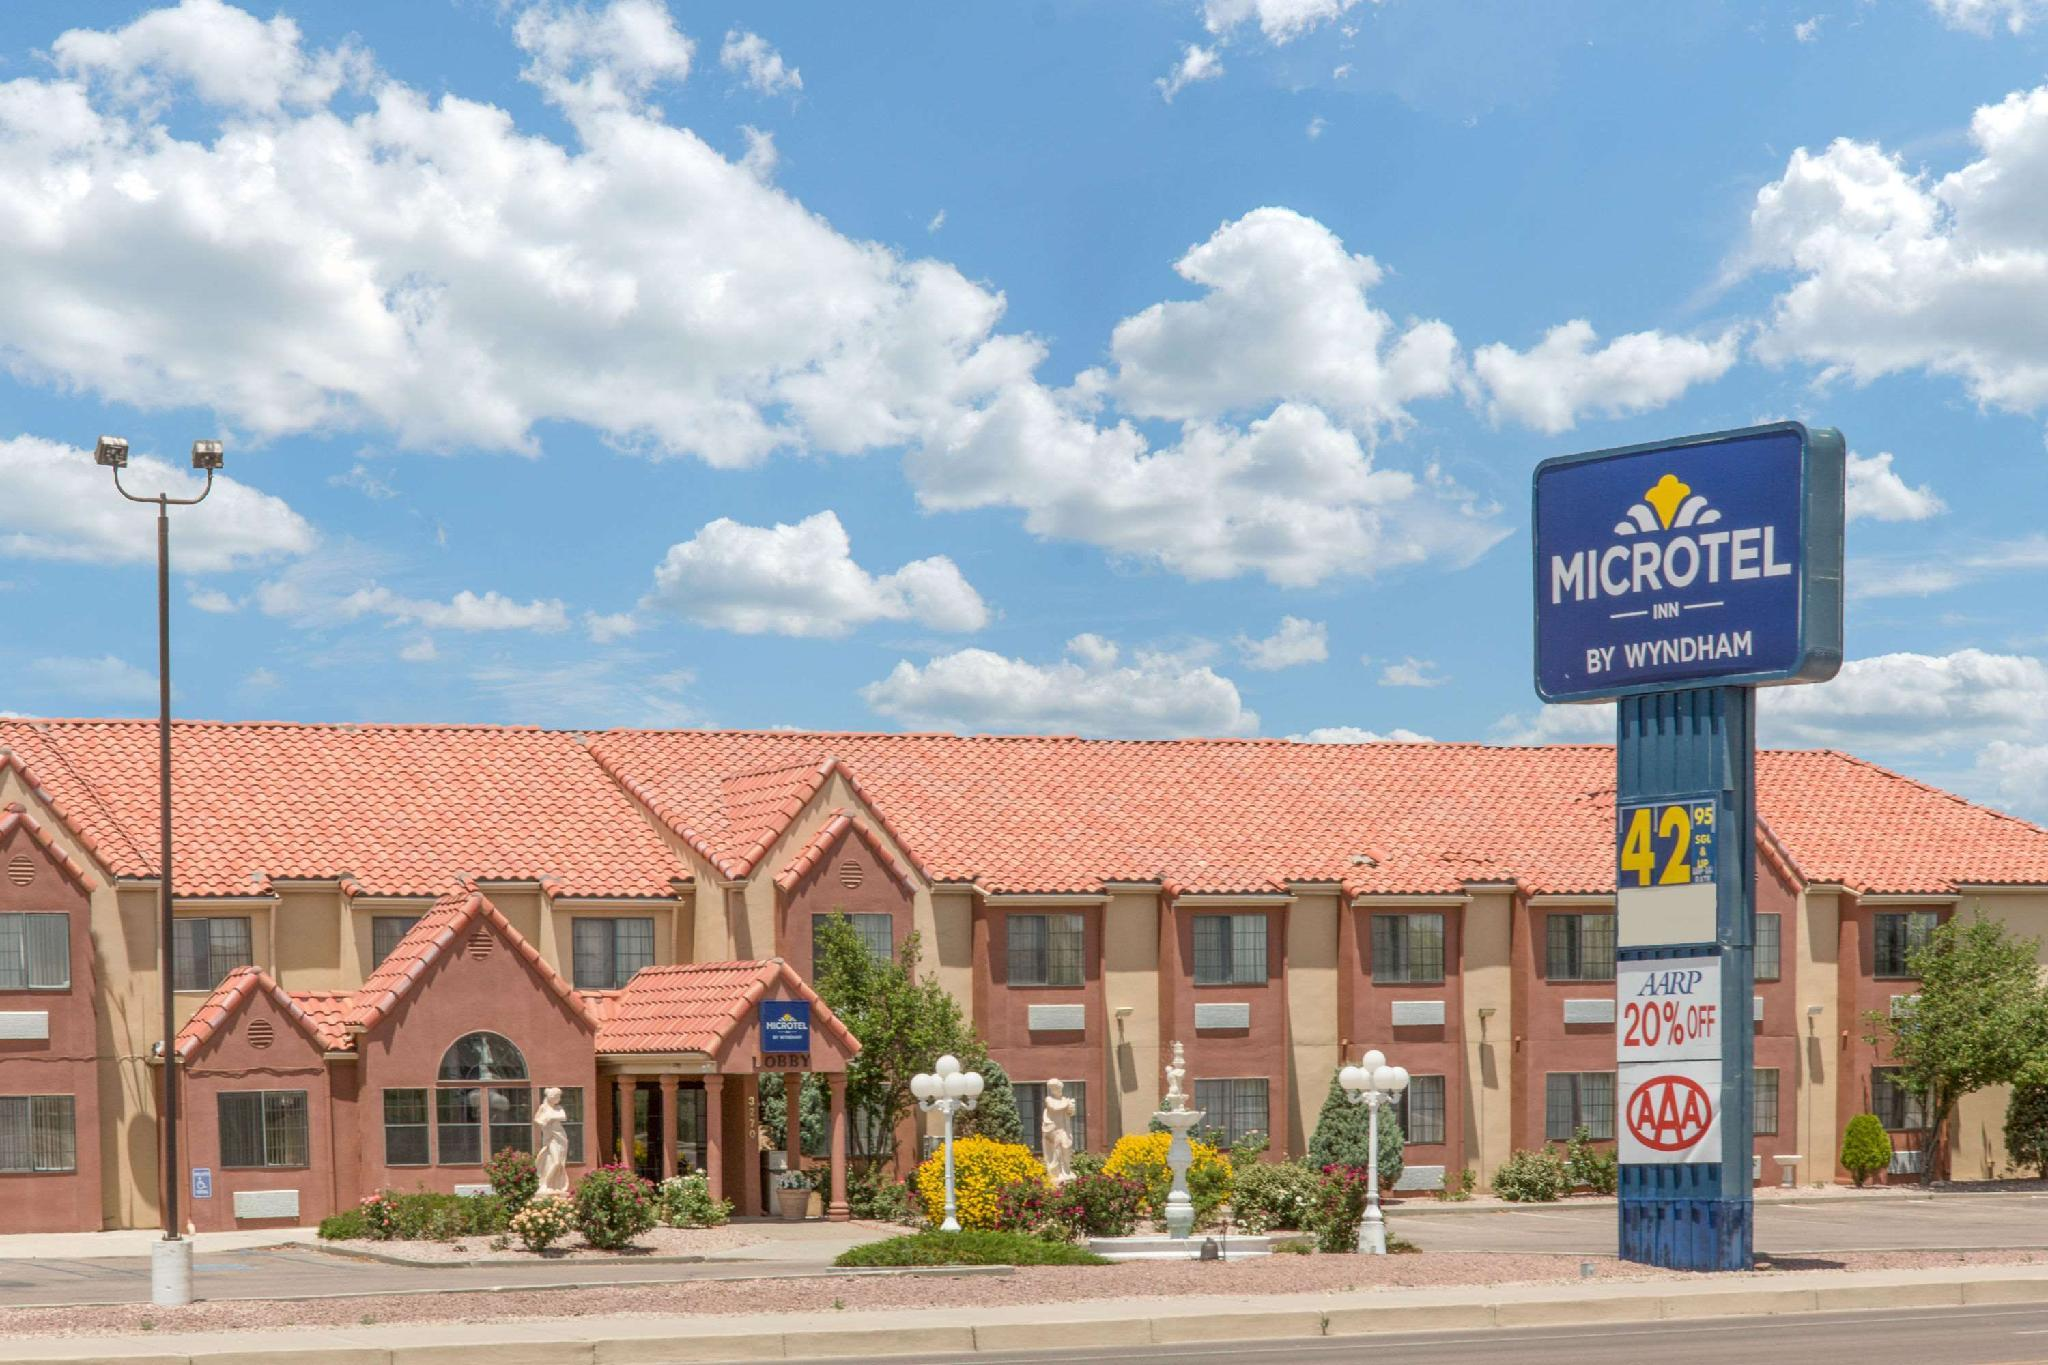 Microtel Inn And Suites By Wyndham Gallup